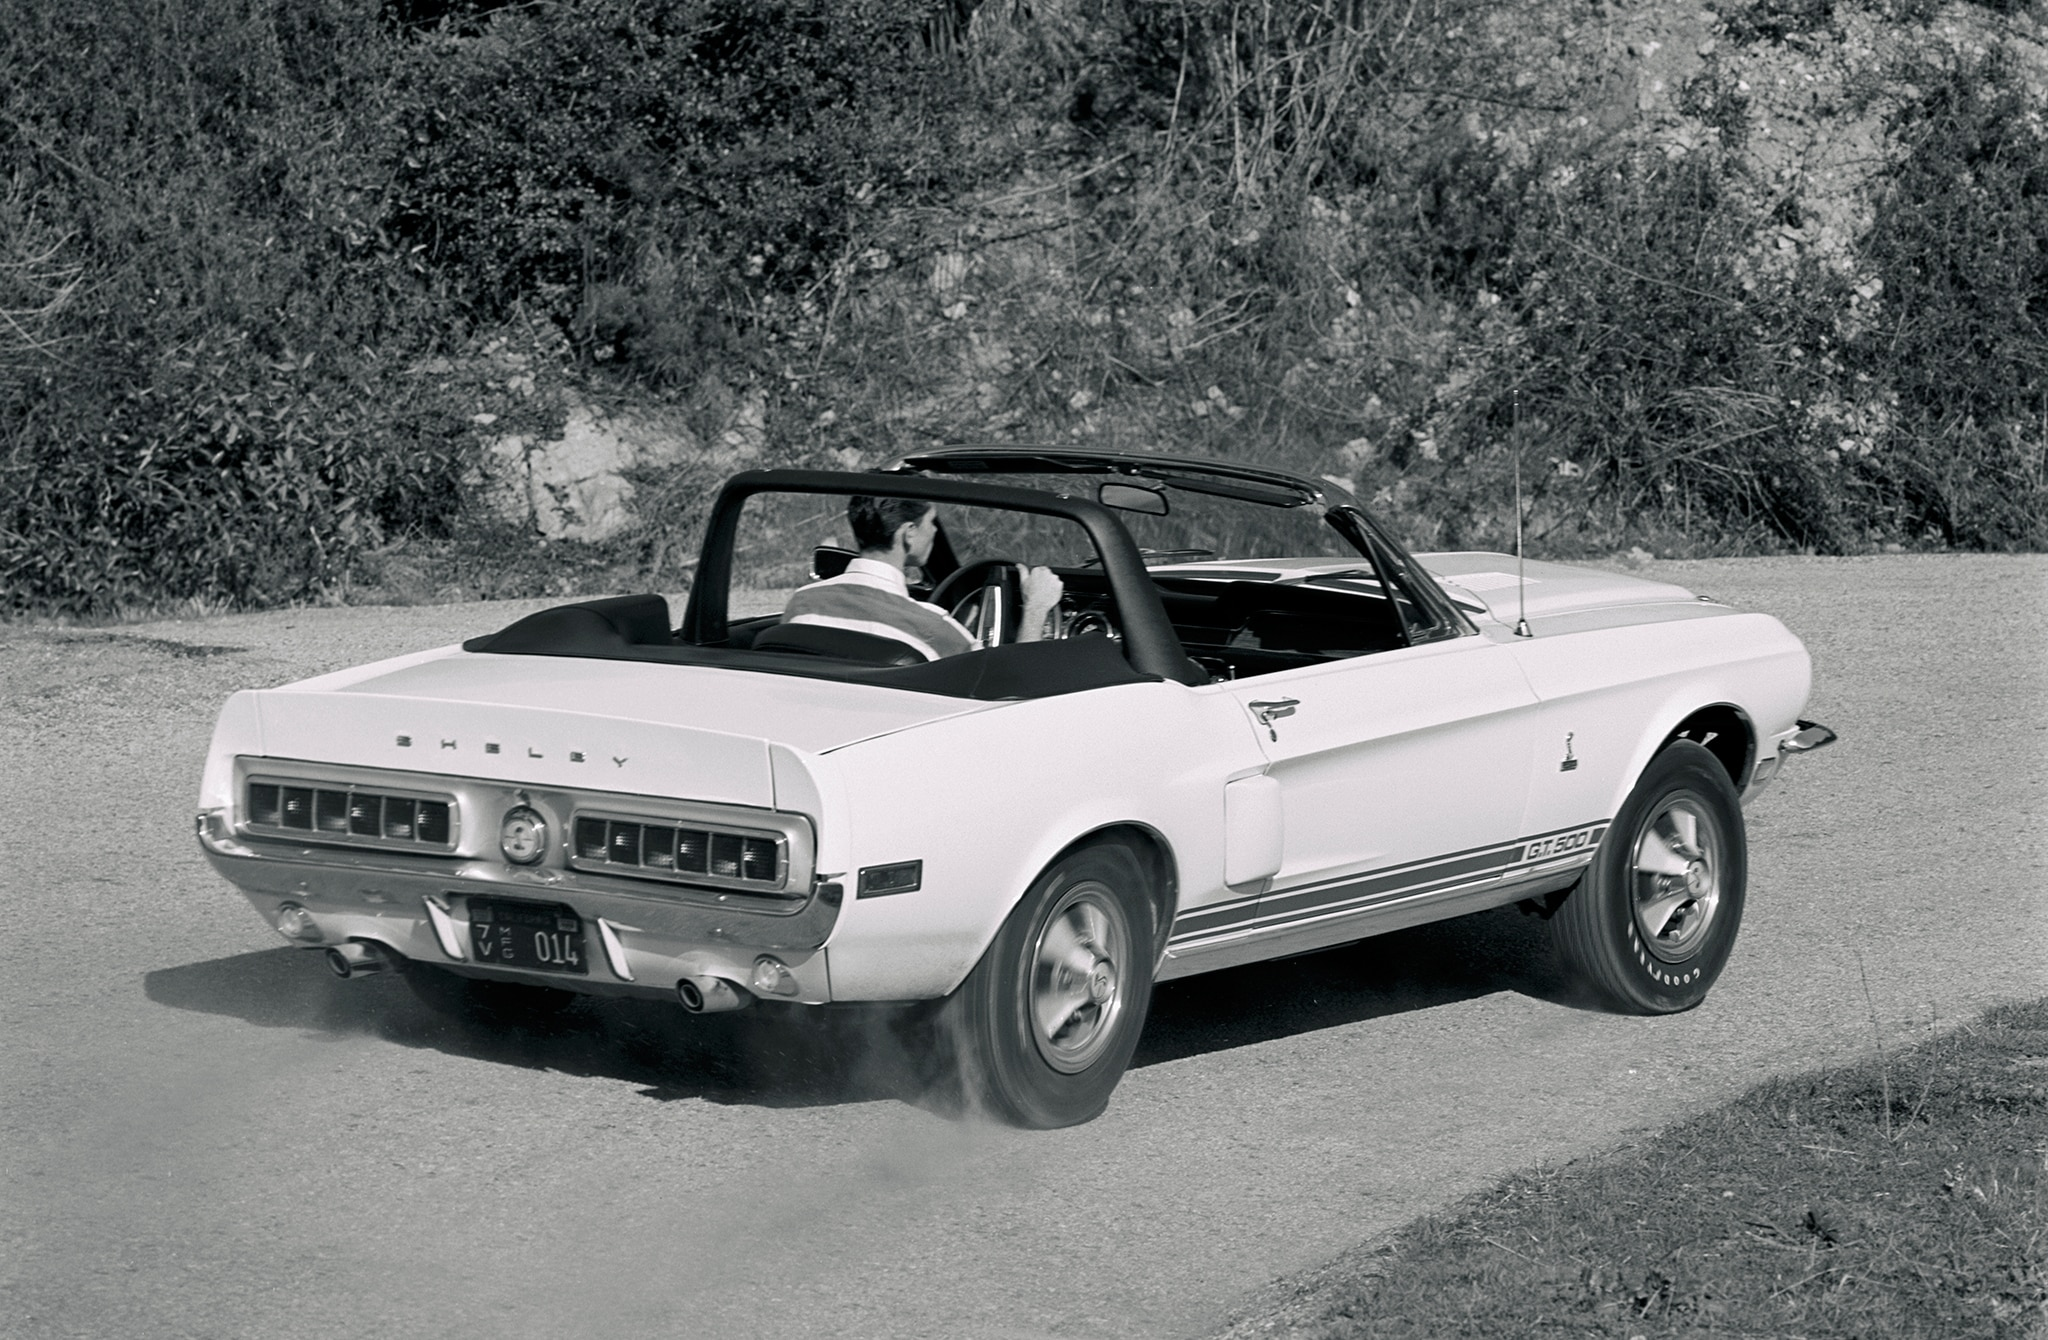 1986 Ford Mustang Topless Shelby Convertible